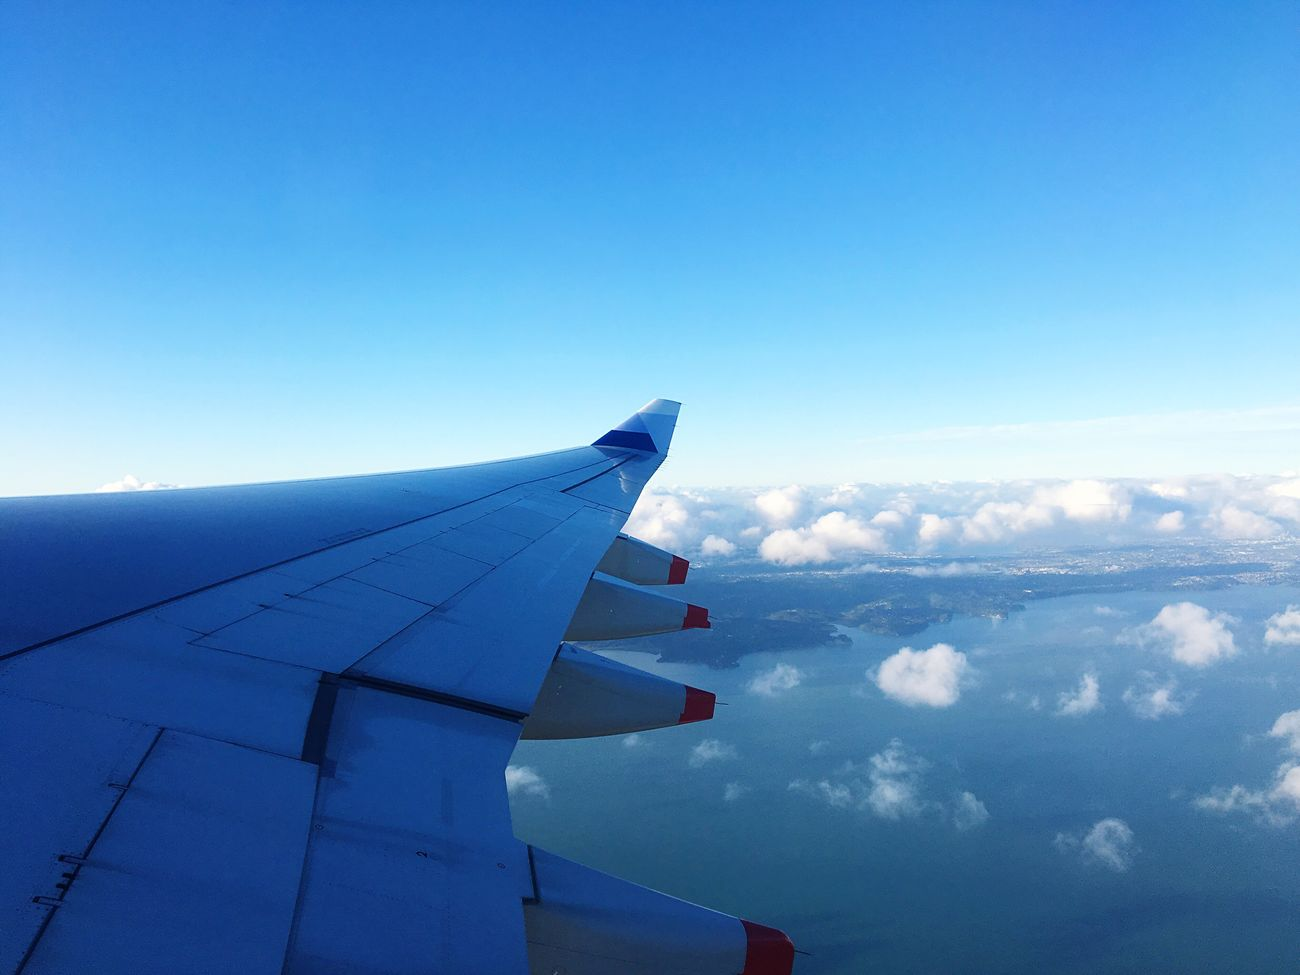 Airplane Transportation Flying Travel Sky Blue Journey Aircraft Wing No People Airplane Wing Mode Of Transport Nature Air Vehicle Cloud - Sky Day Outdoors Beauty In Nature